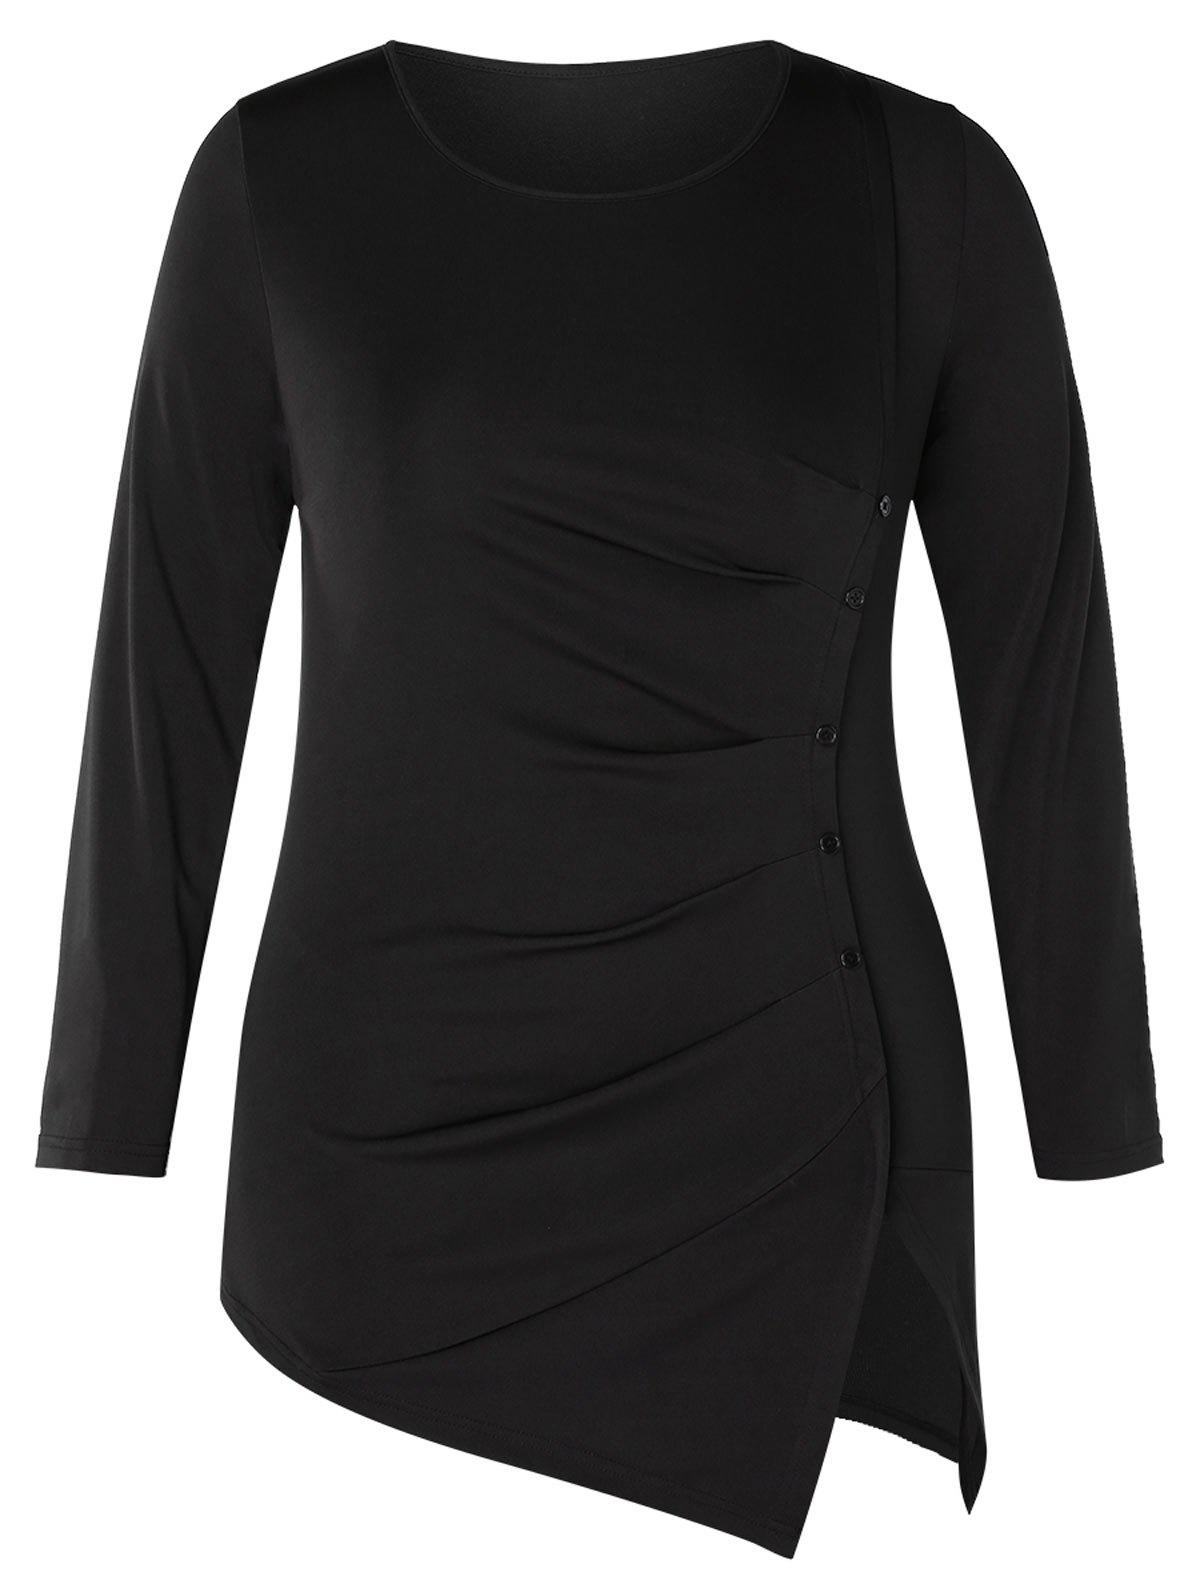 Plus Size Long Sleeve Ruched Slit T-shirt - BLACK 4X